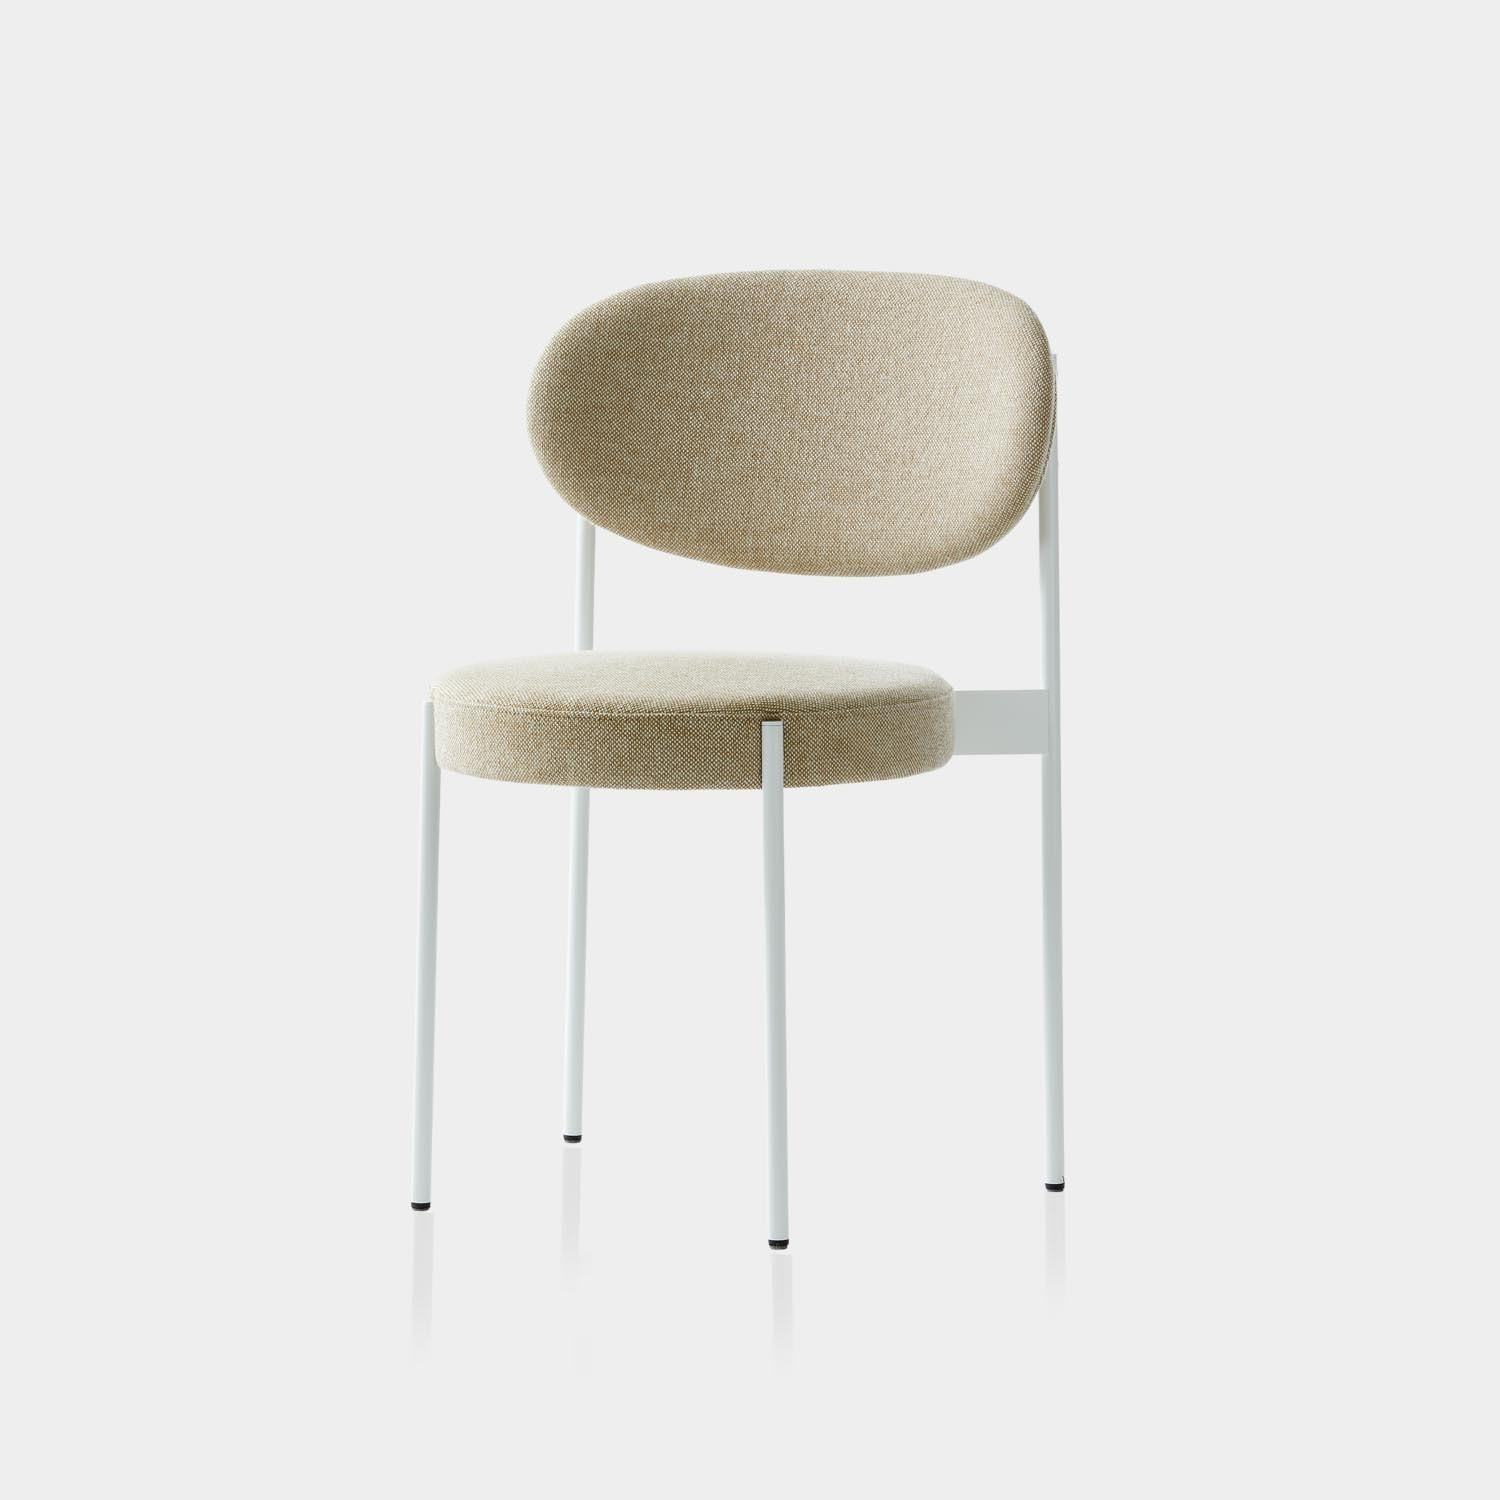 Series 430 Dining Chair, White Frame, Hallingdal Wool Upholstery